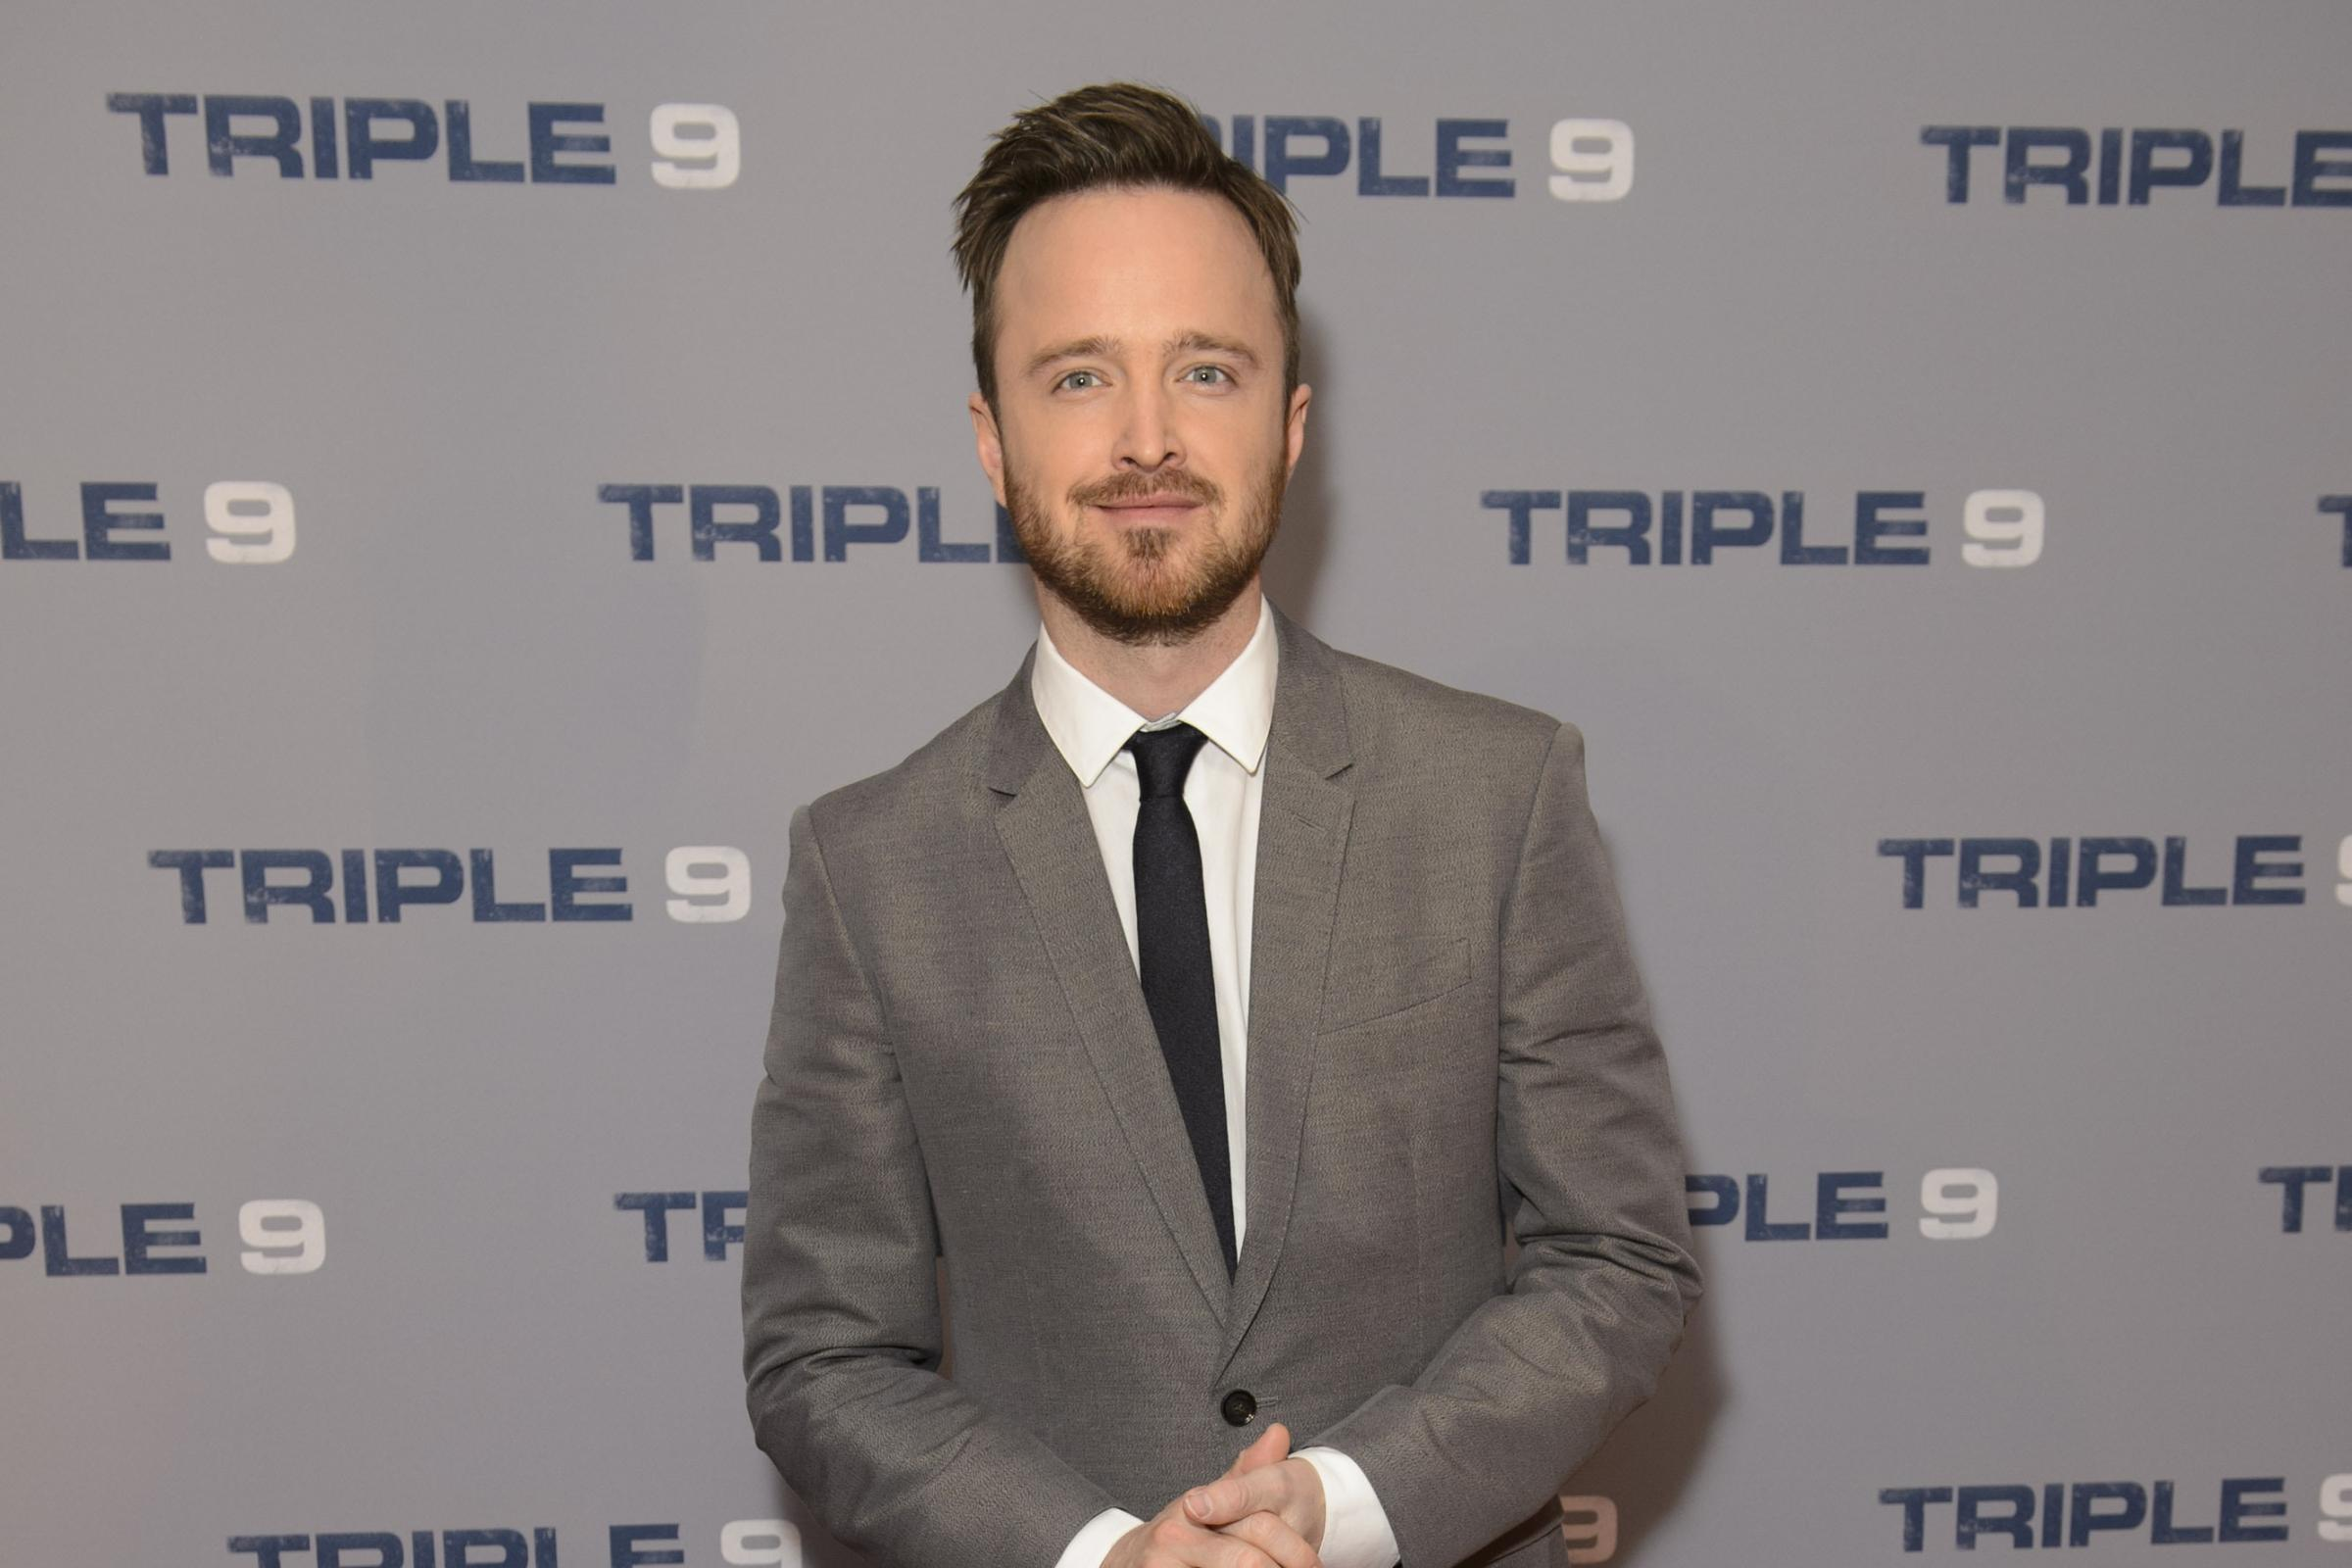 Aaron Paul (Matt Crossick/PA)